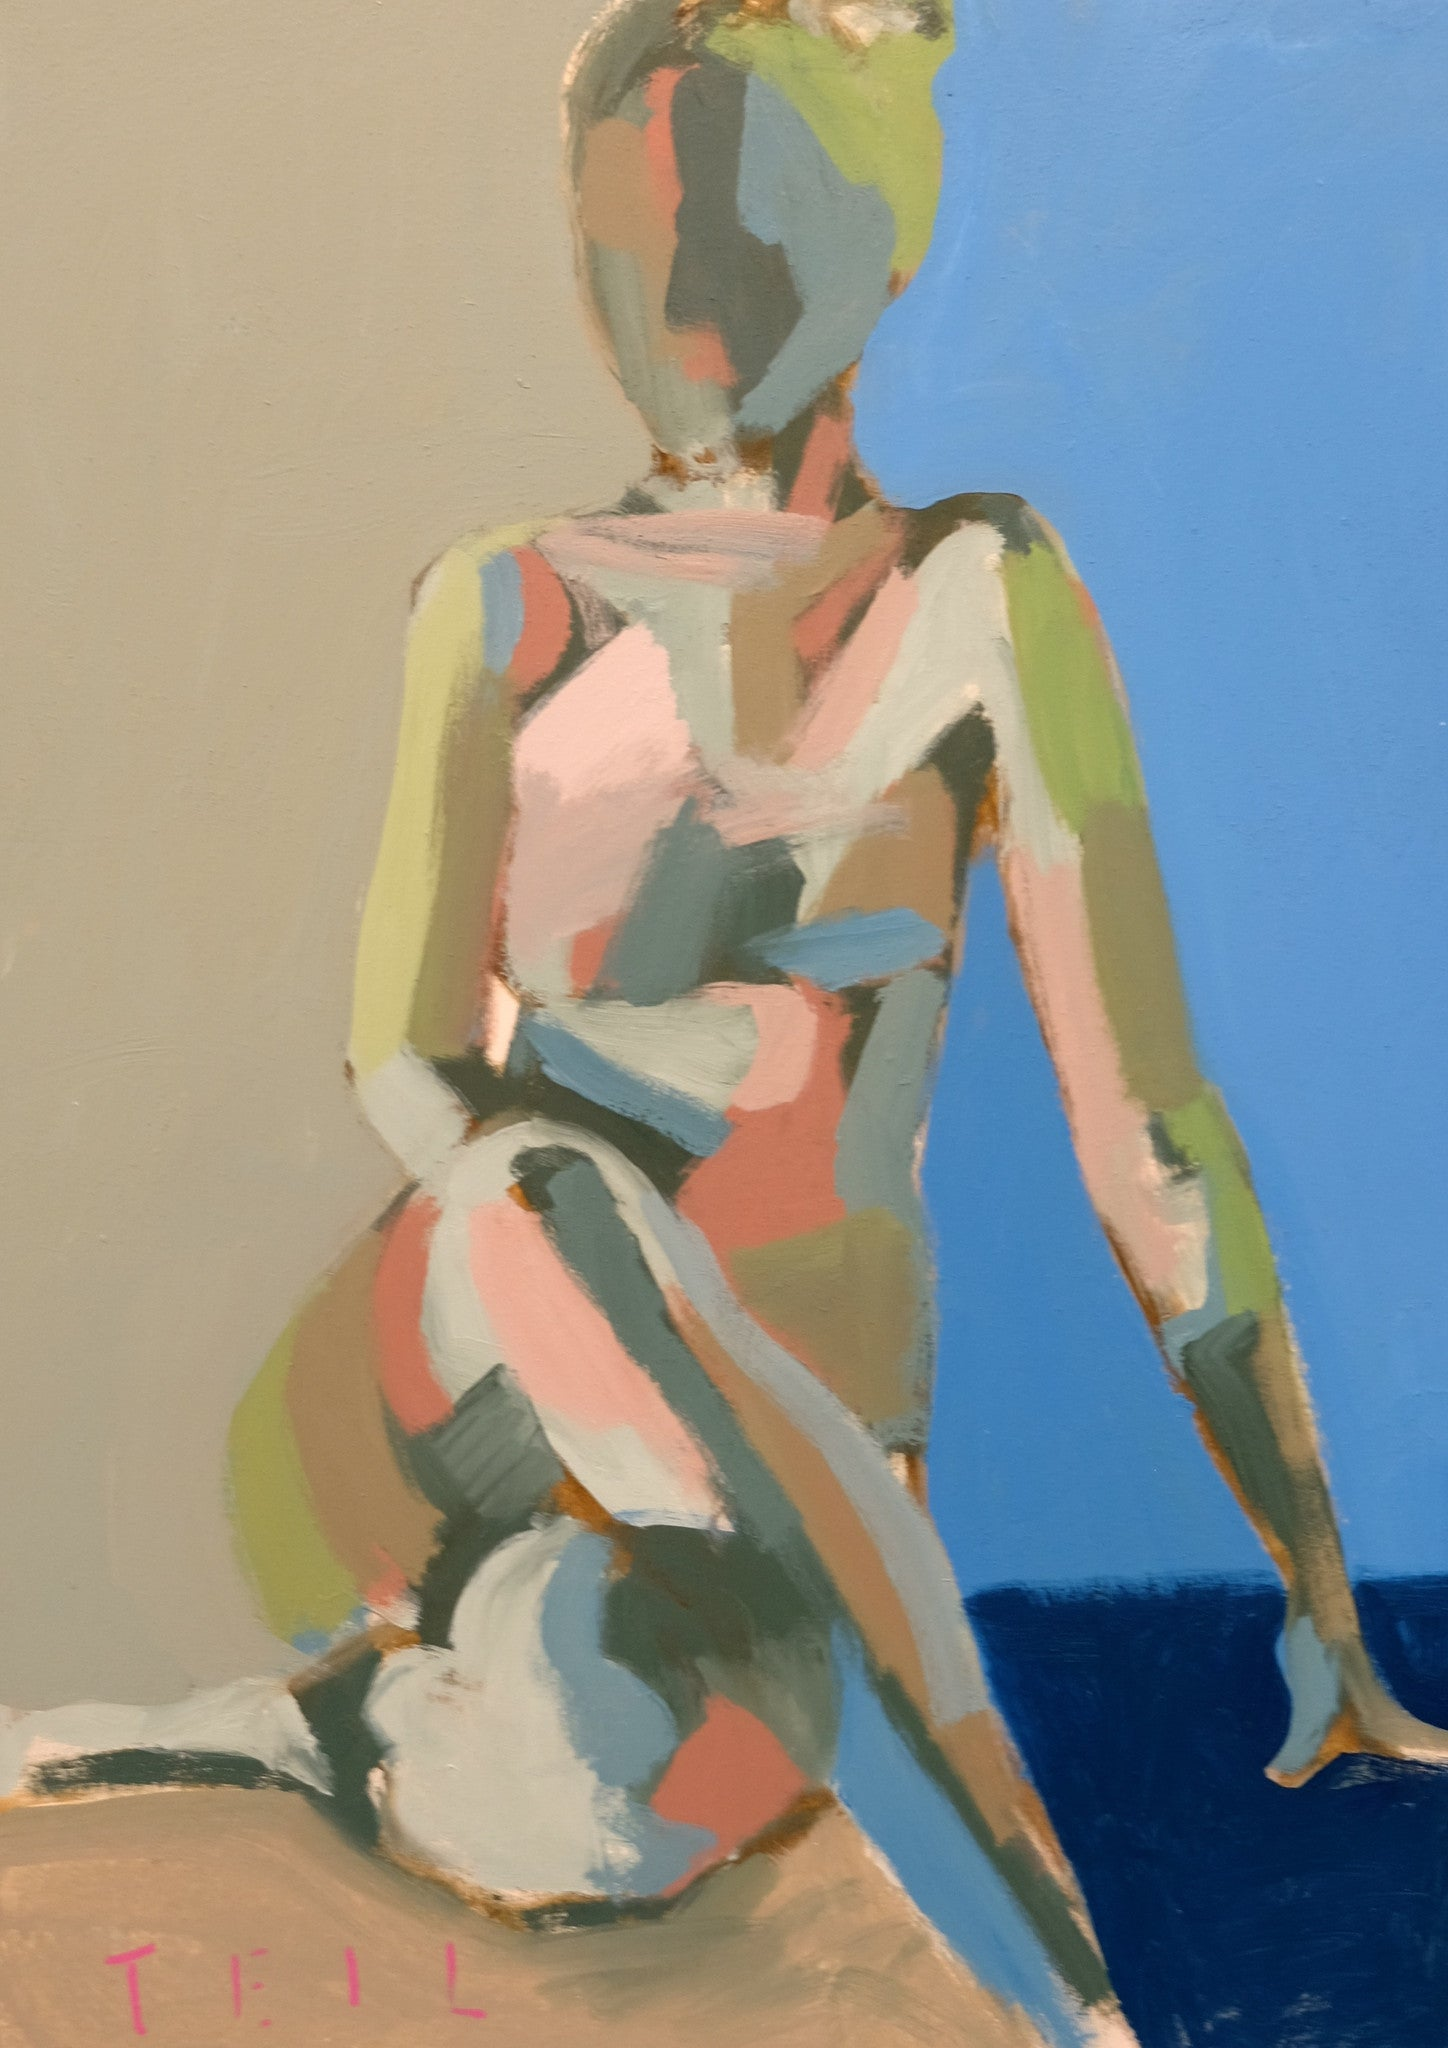 Cobalt and Khaki Figure, 18x24